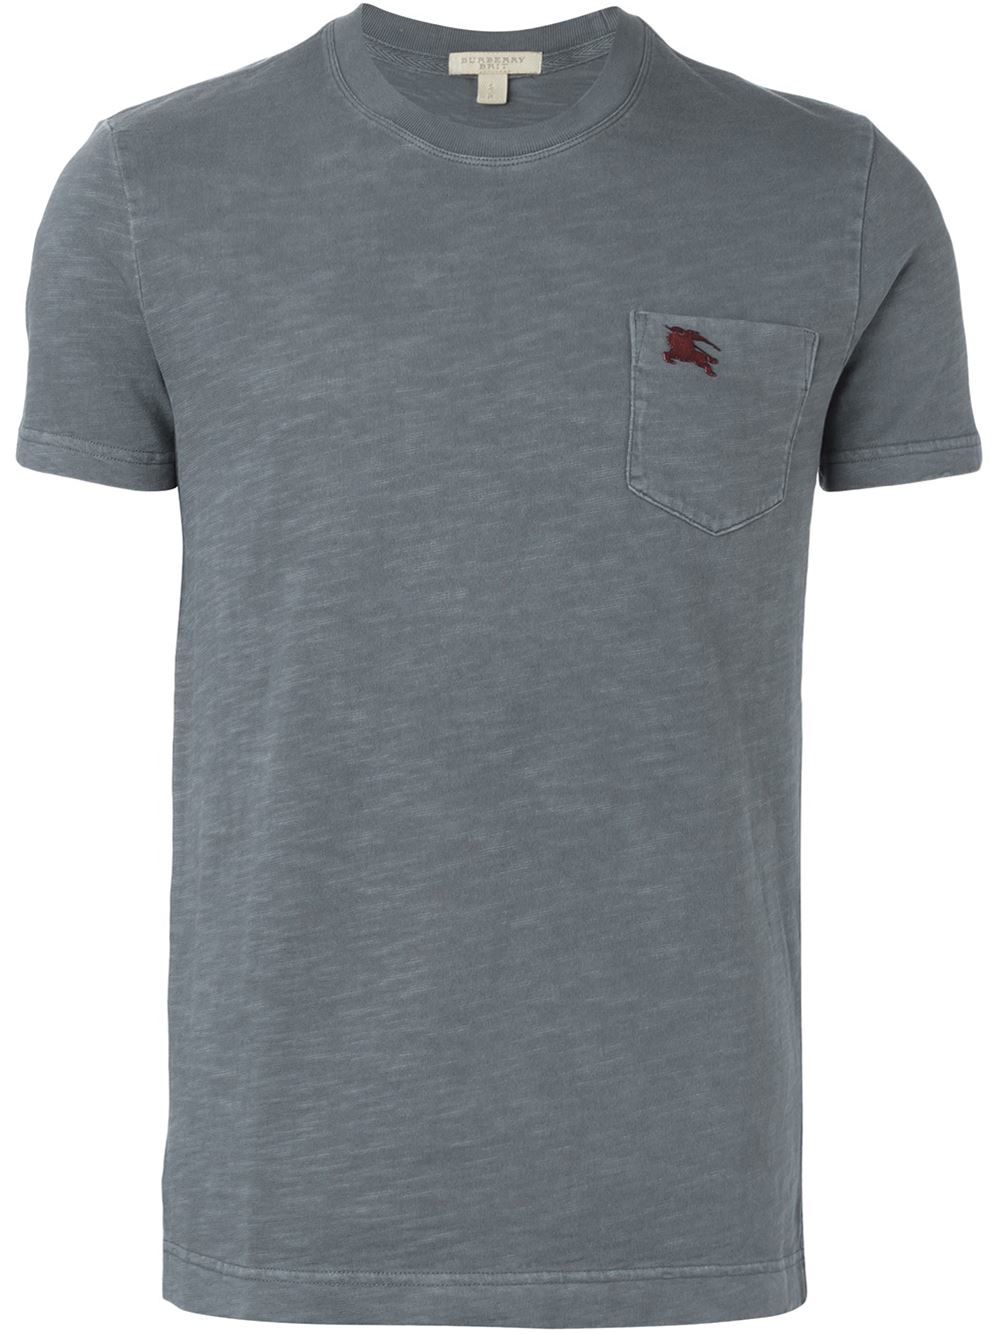 Burberry brit pocket logo t shirt in gray for men grey for Pocket logo t shirt